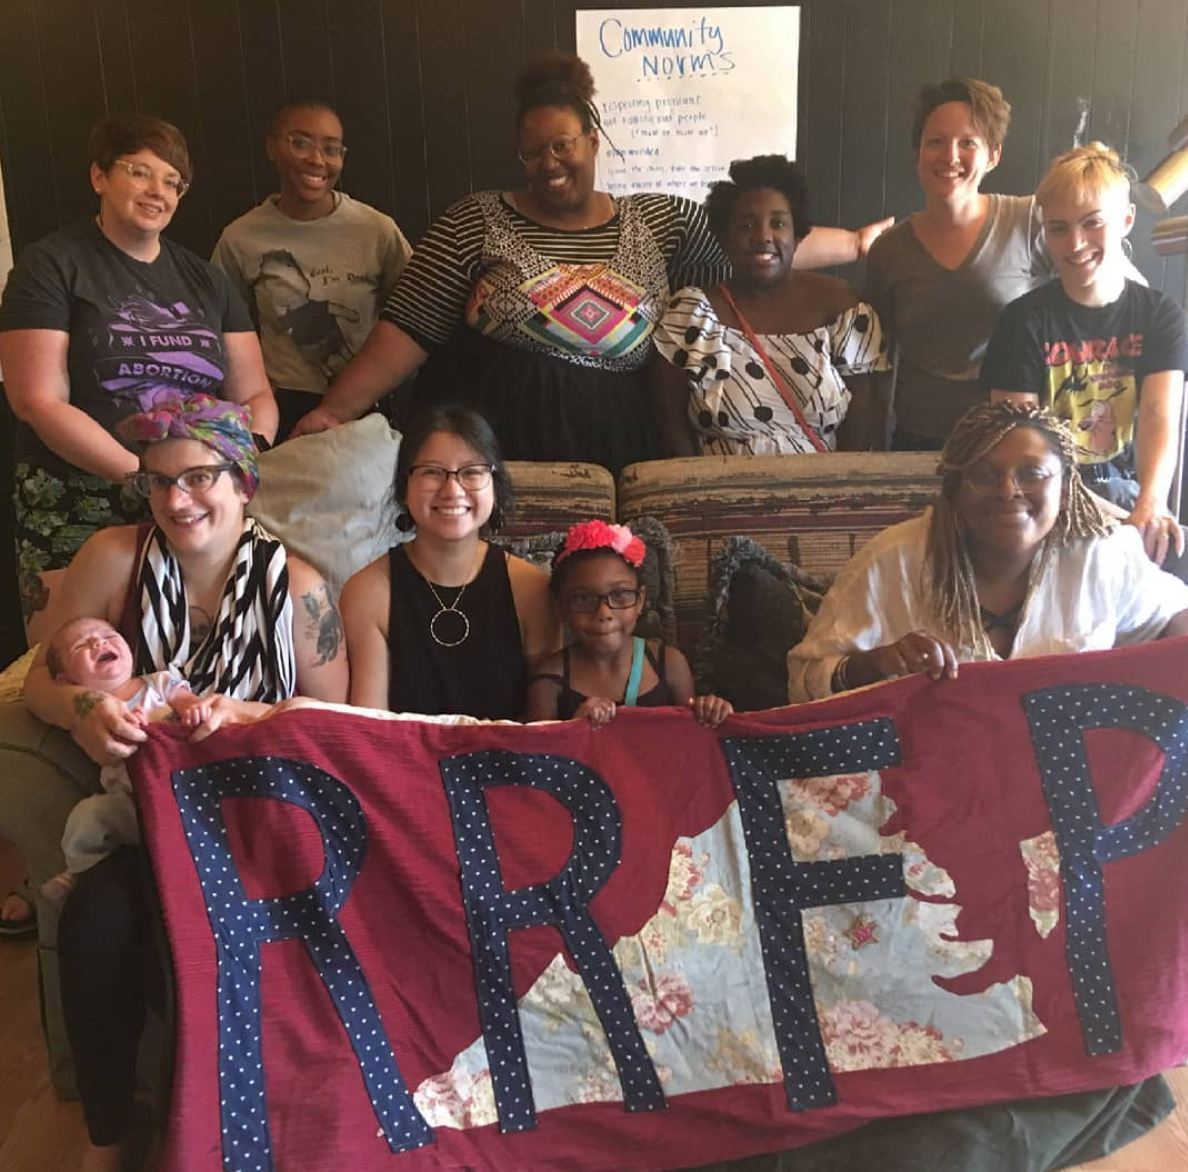 group photo of rrfp volunteers and collective members behind the RRFP quilted banner